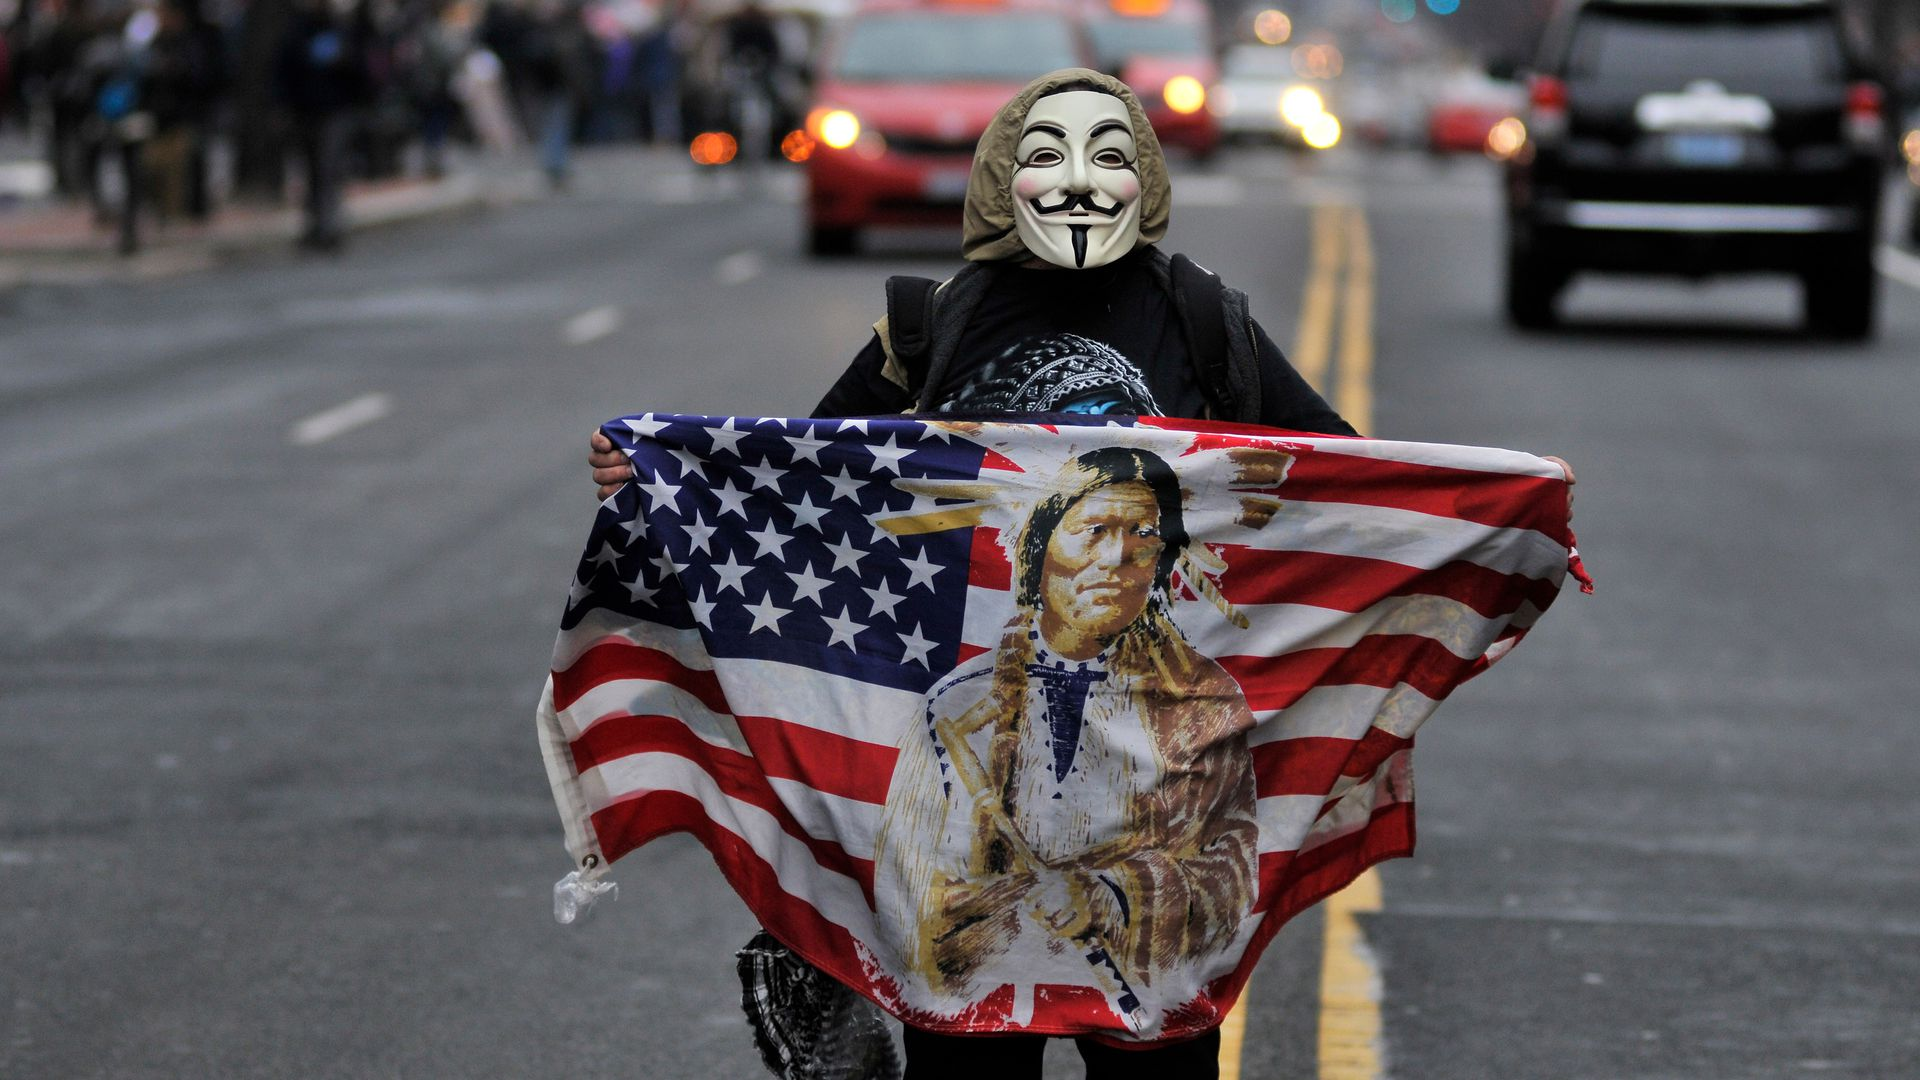 A masked person stands in the street after Trump's inauguration.